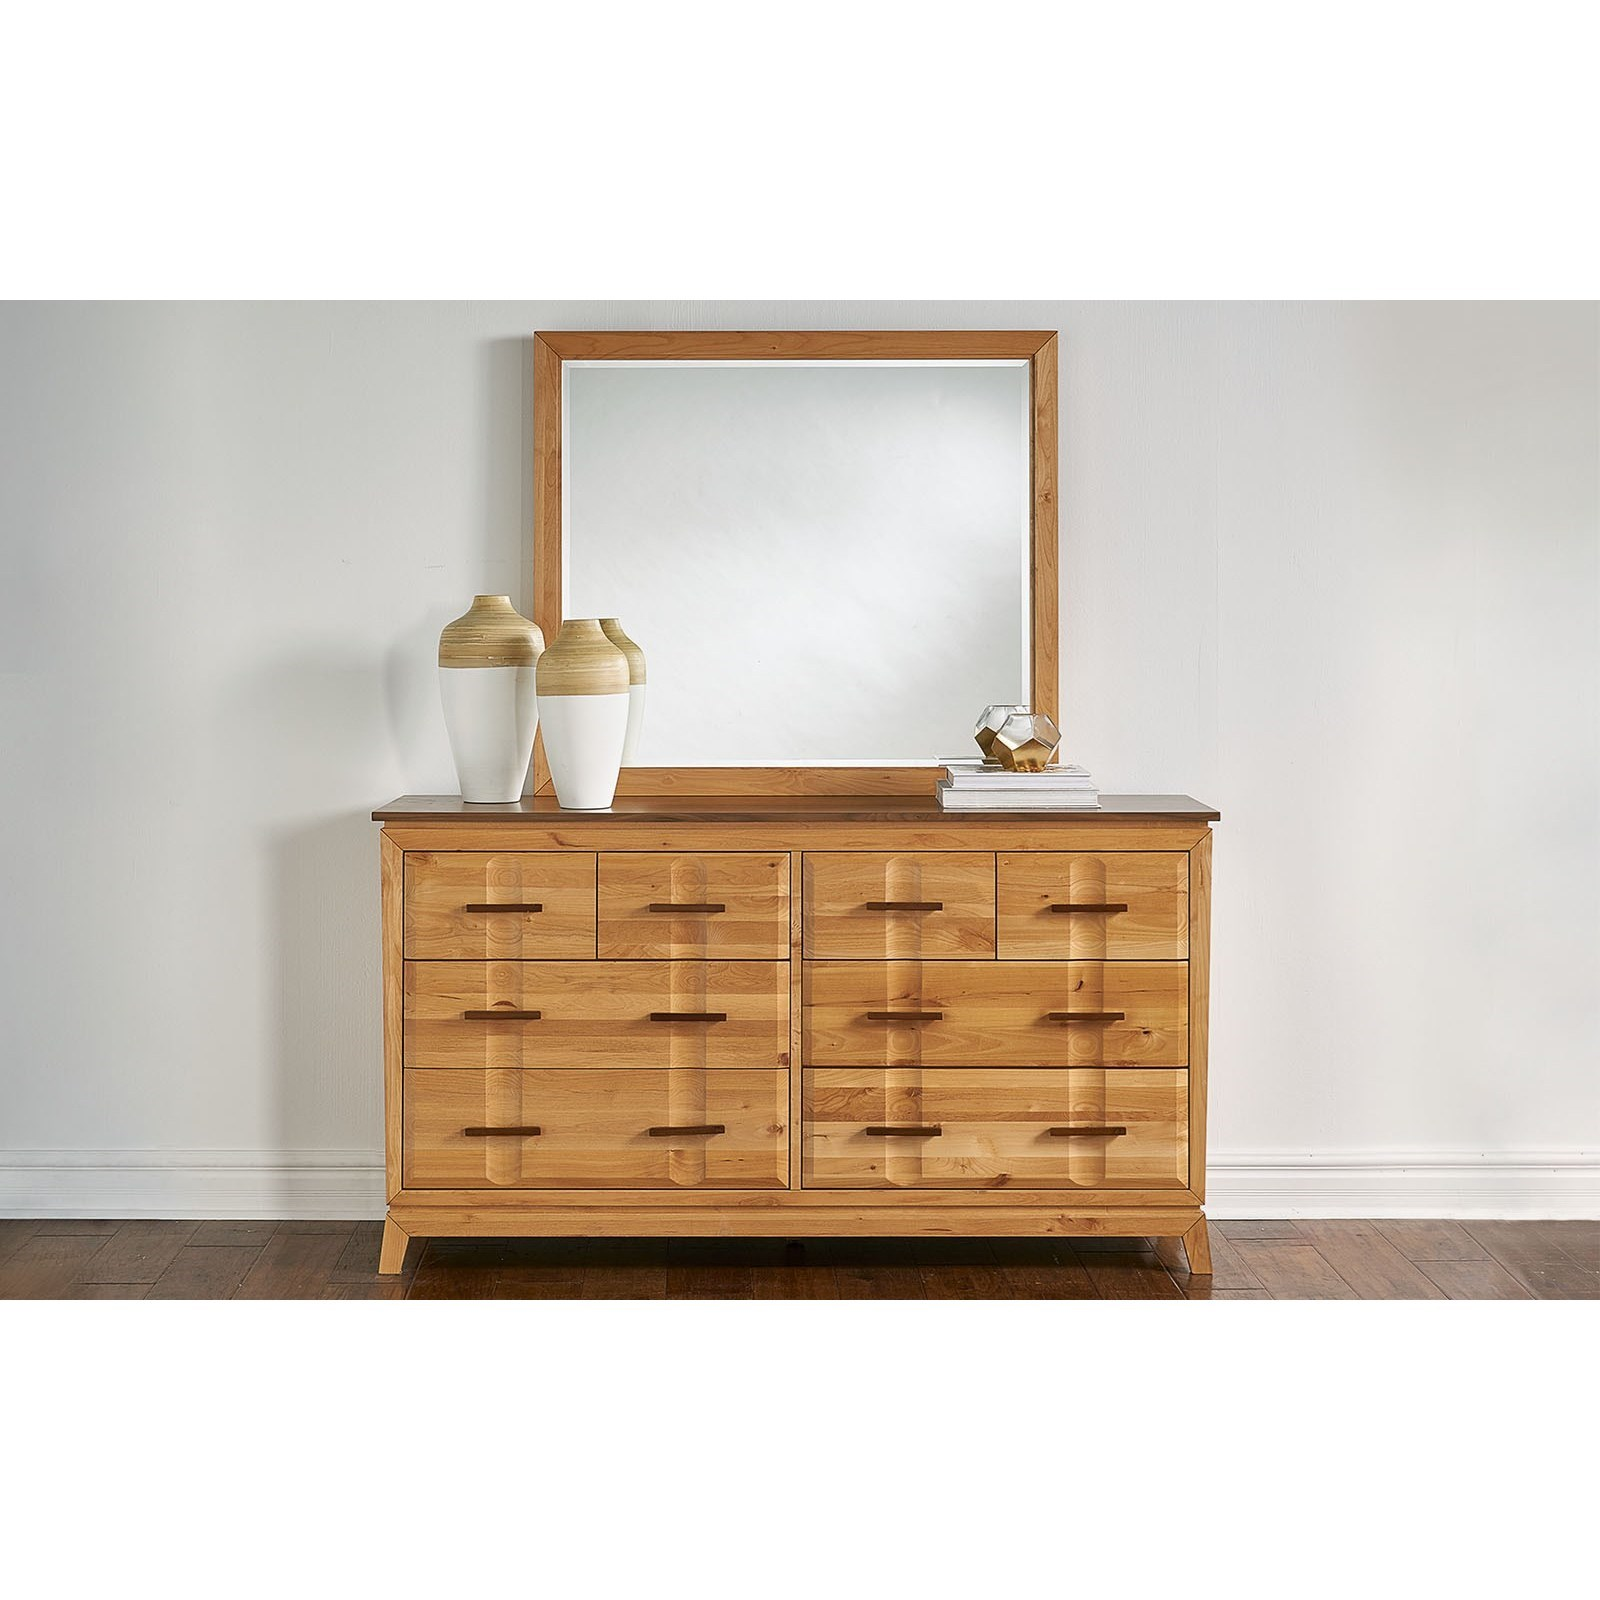 Modway 8-Drawer Dresser and Mirror Set by A-A at Walker's Furniture